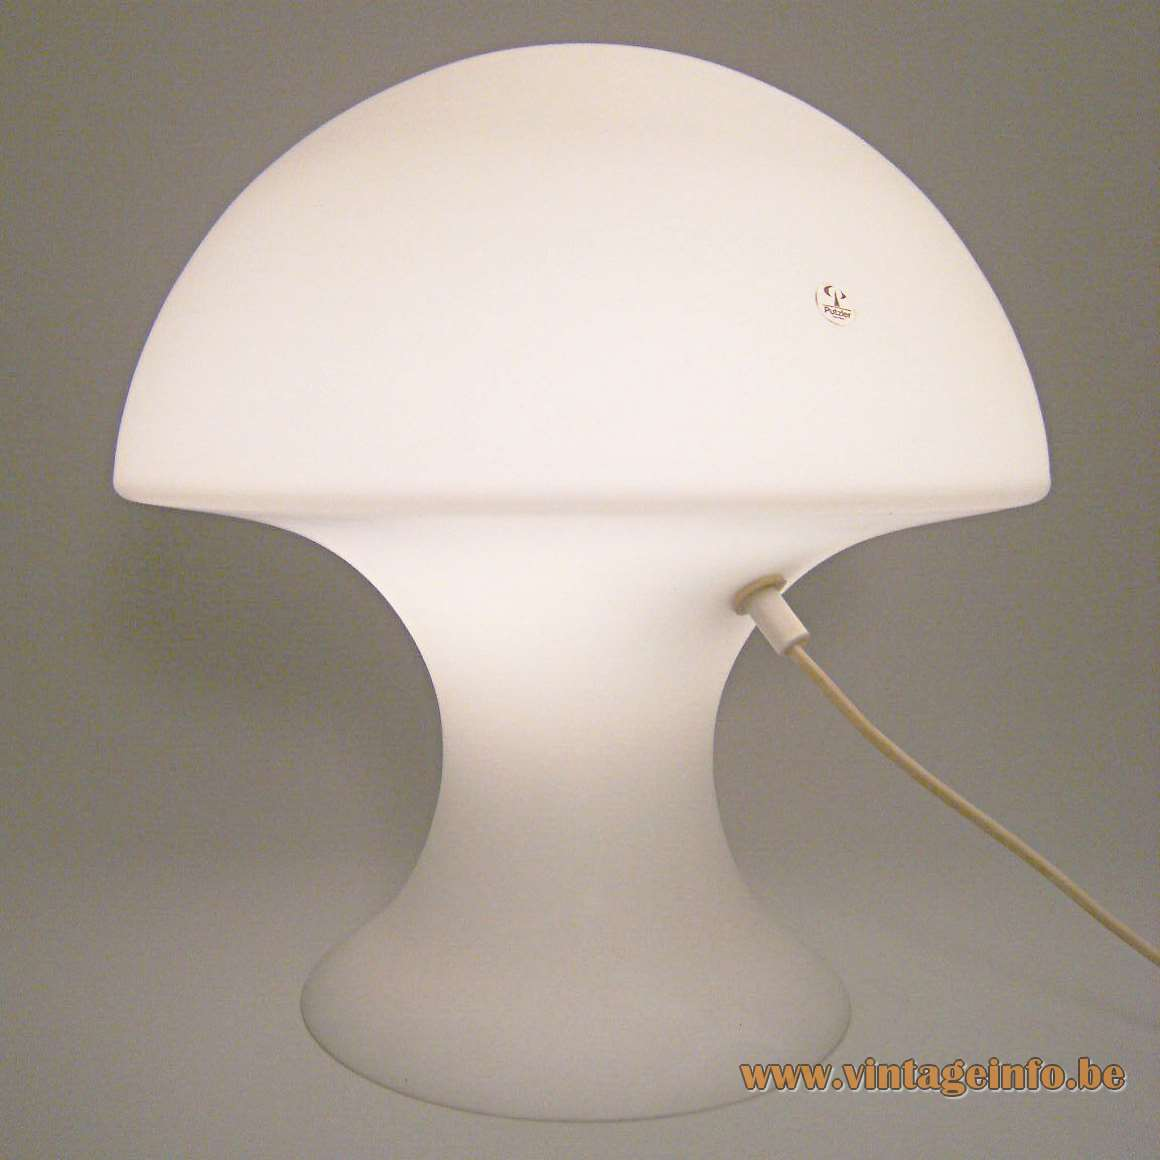 Peill & Putzler Mushroom Table Lamp